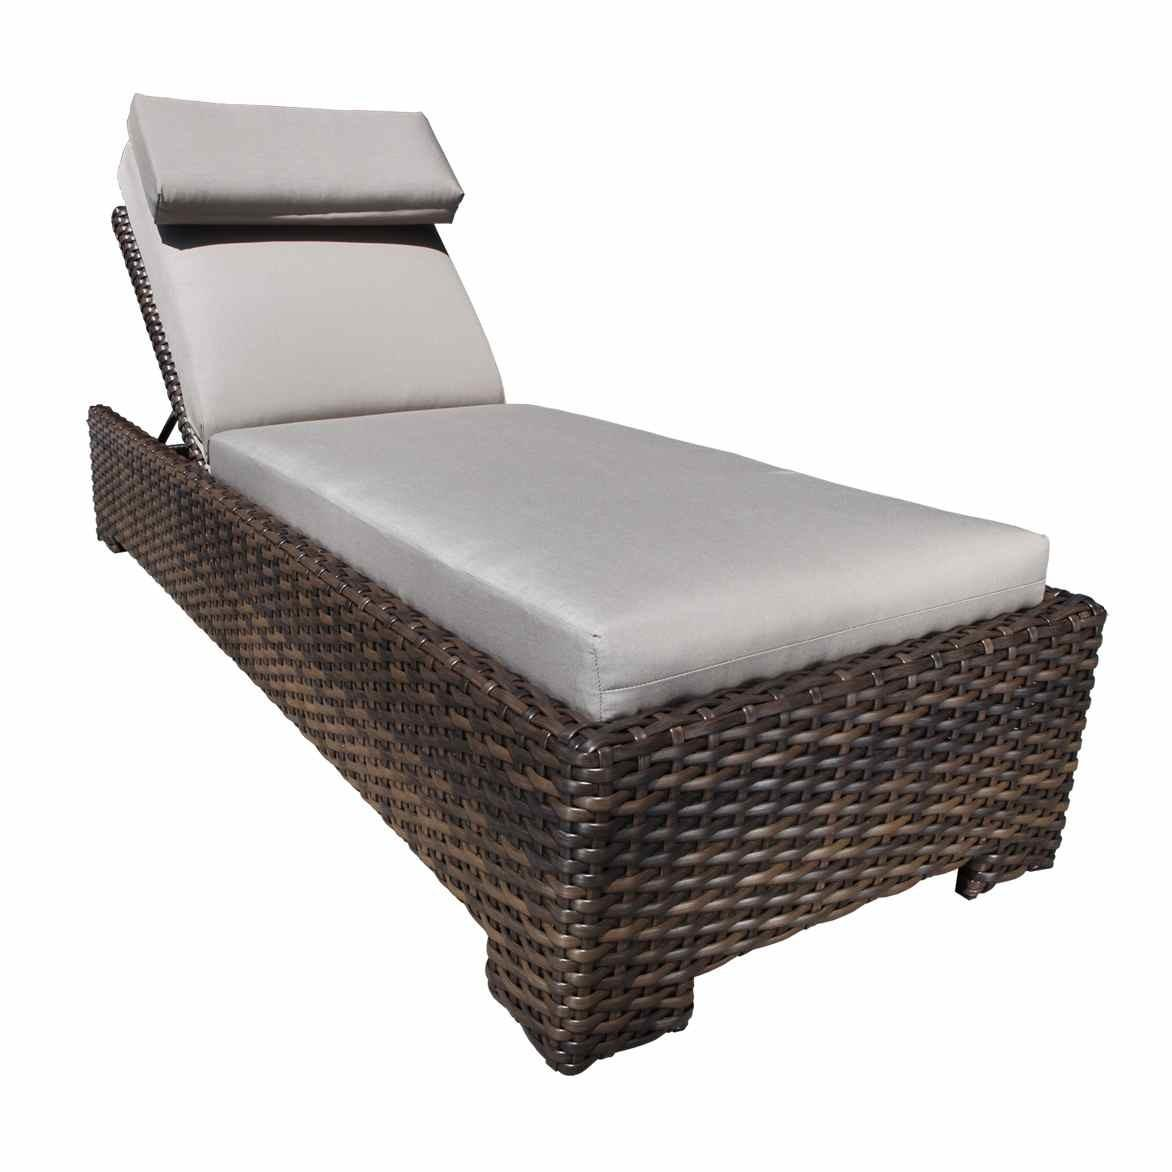 Outdoor Exciting Chaise Lounge